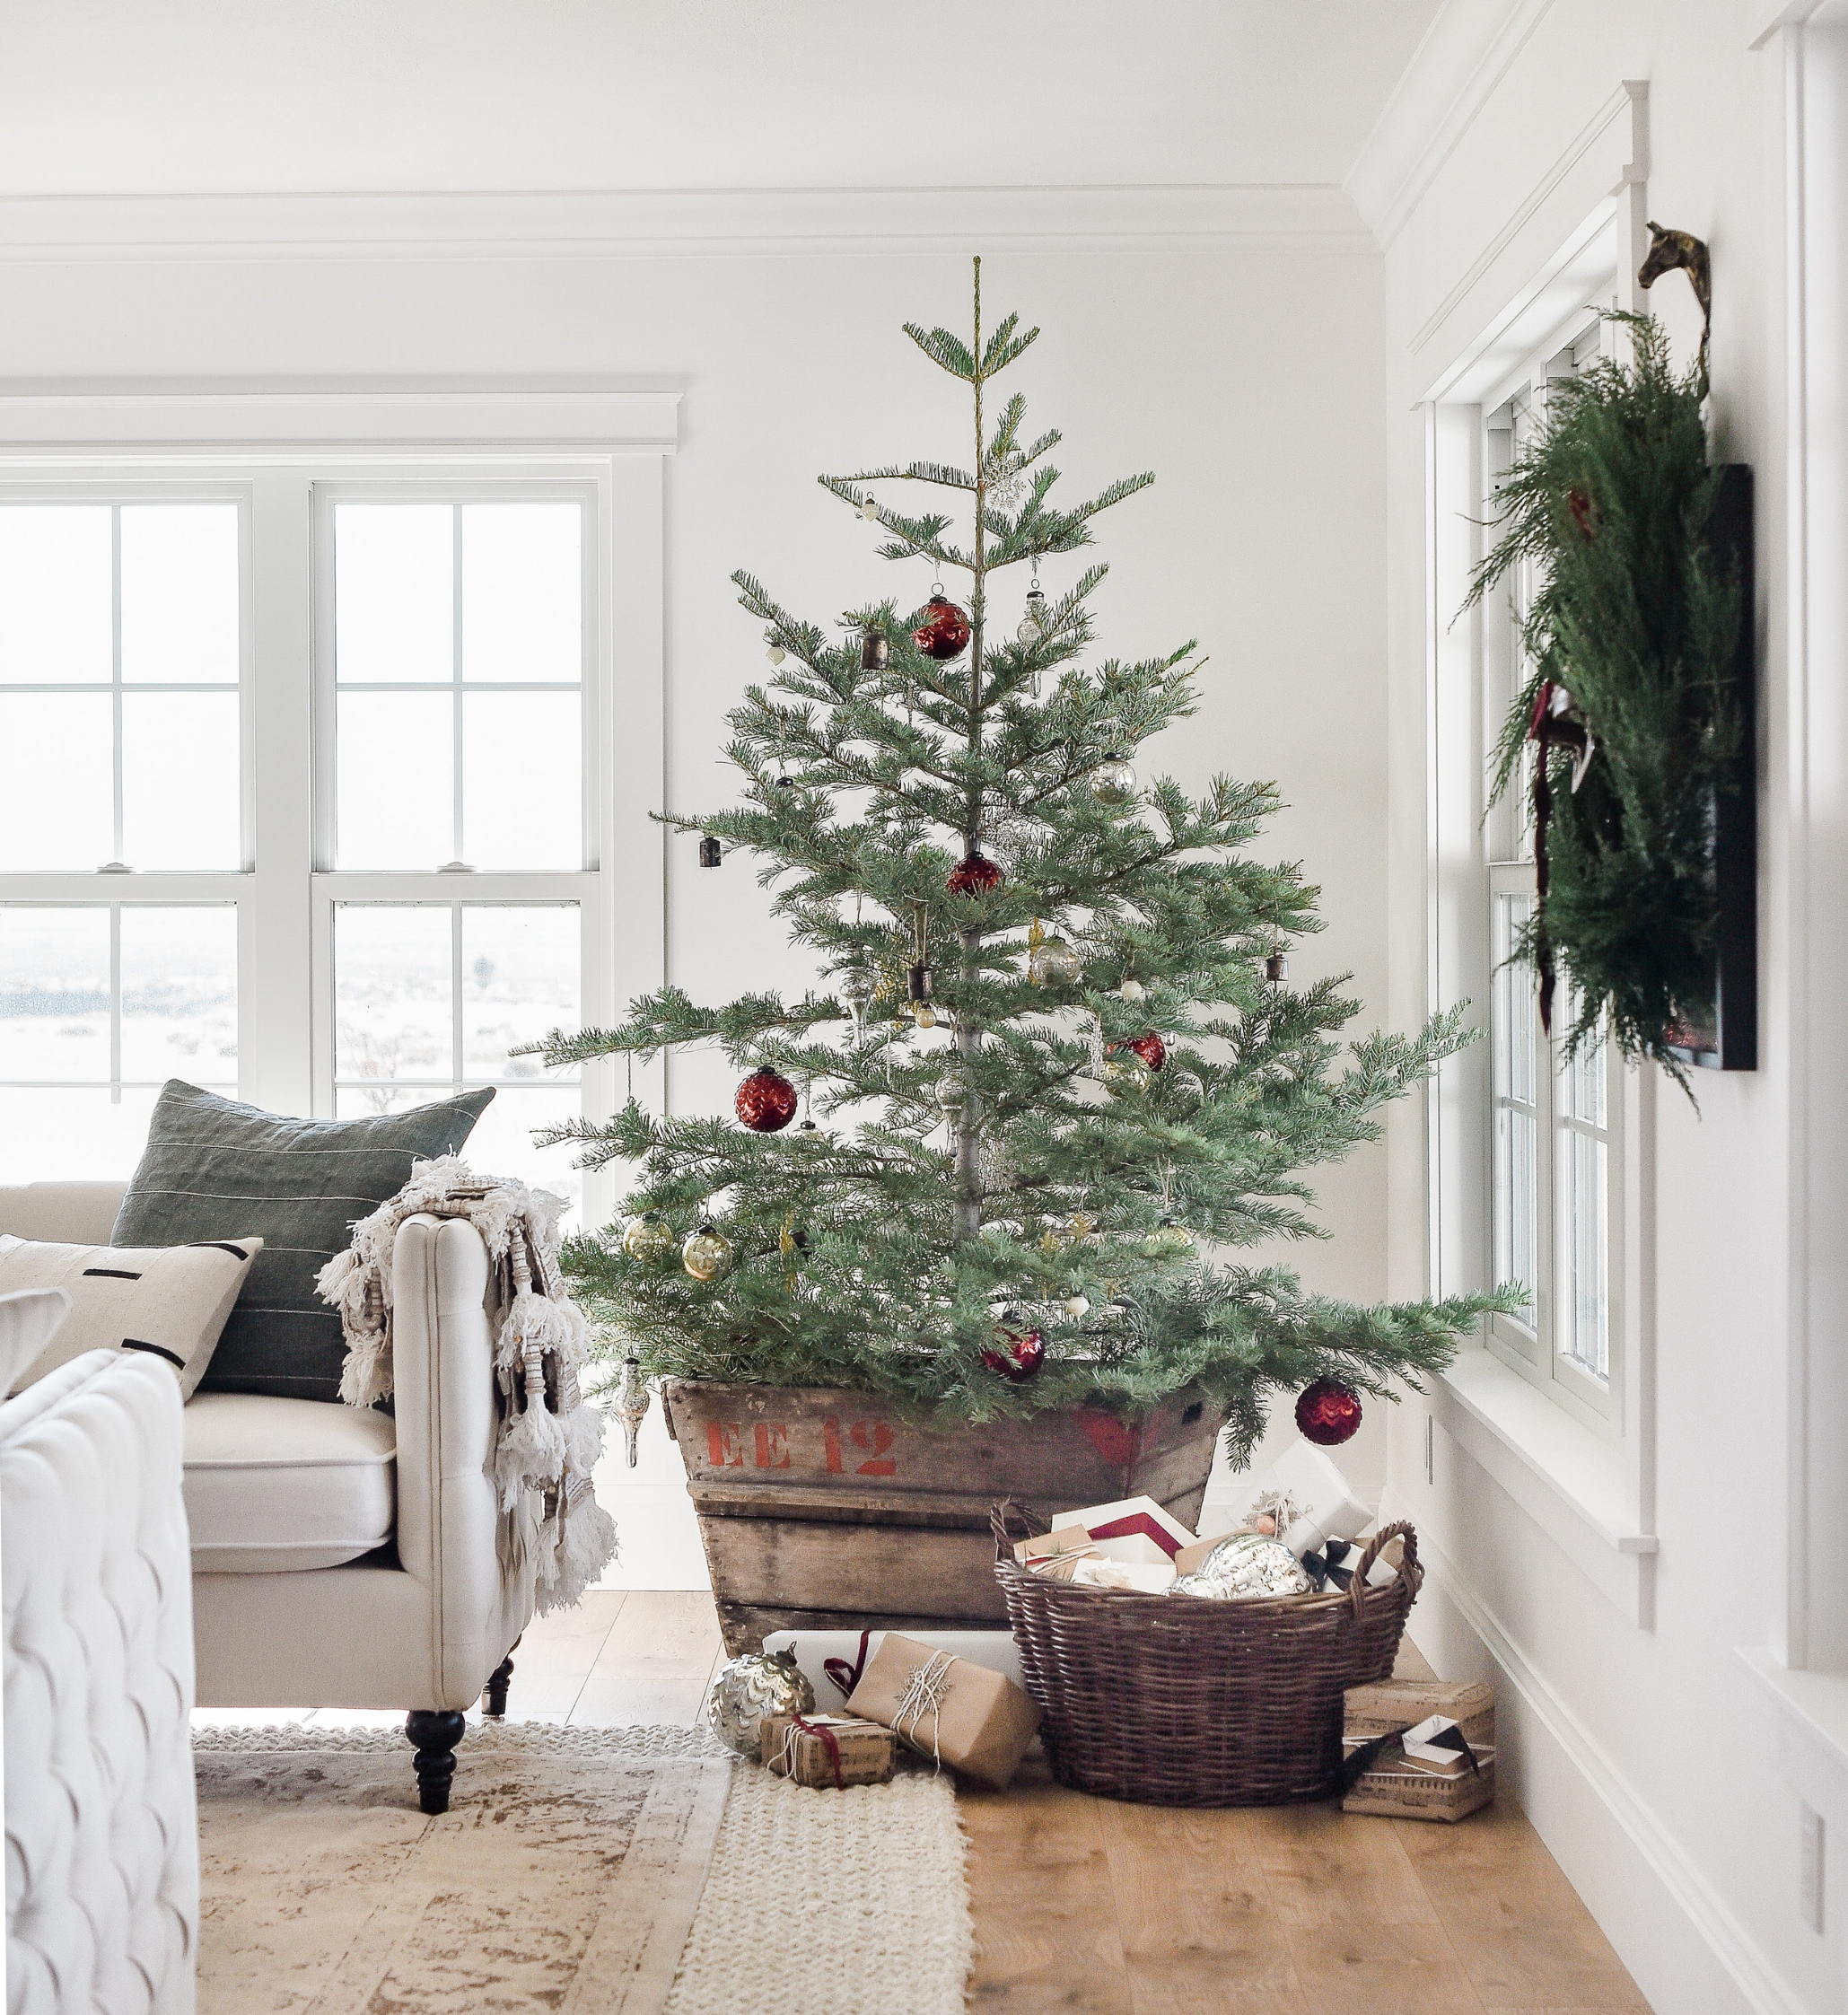 decorate small living room for christmas teal couch farmhouse decor tree ideas boxwood avenue beautiful with vintage decorations on minimal live from boxwoodavenue com